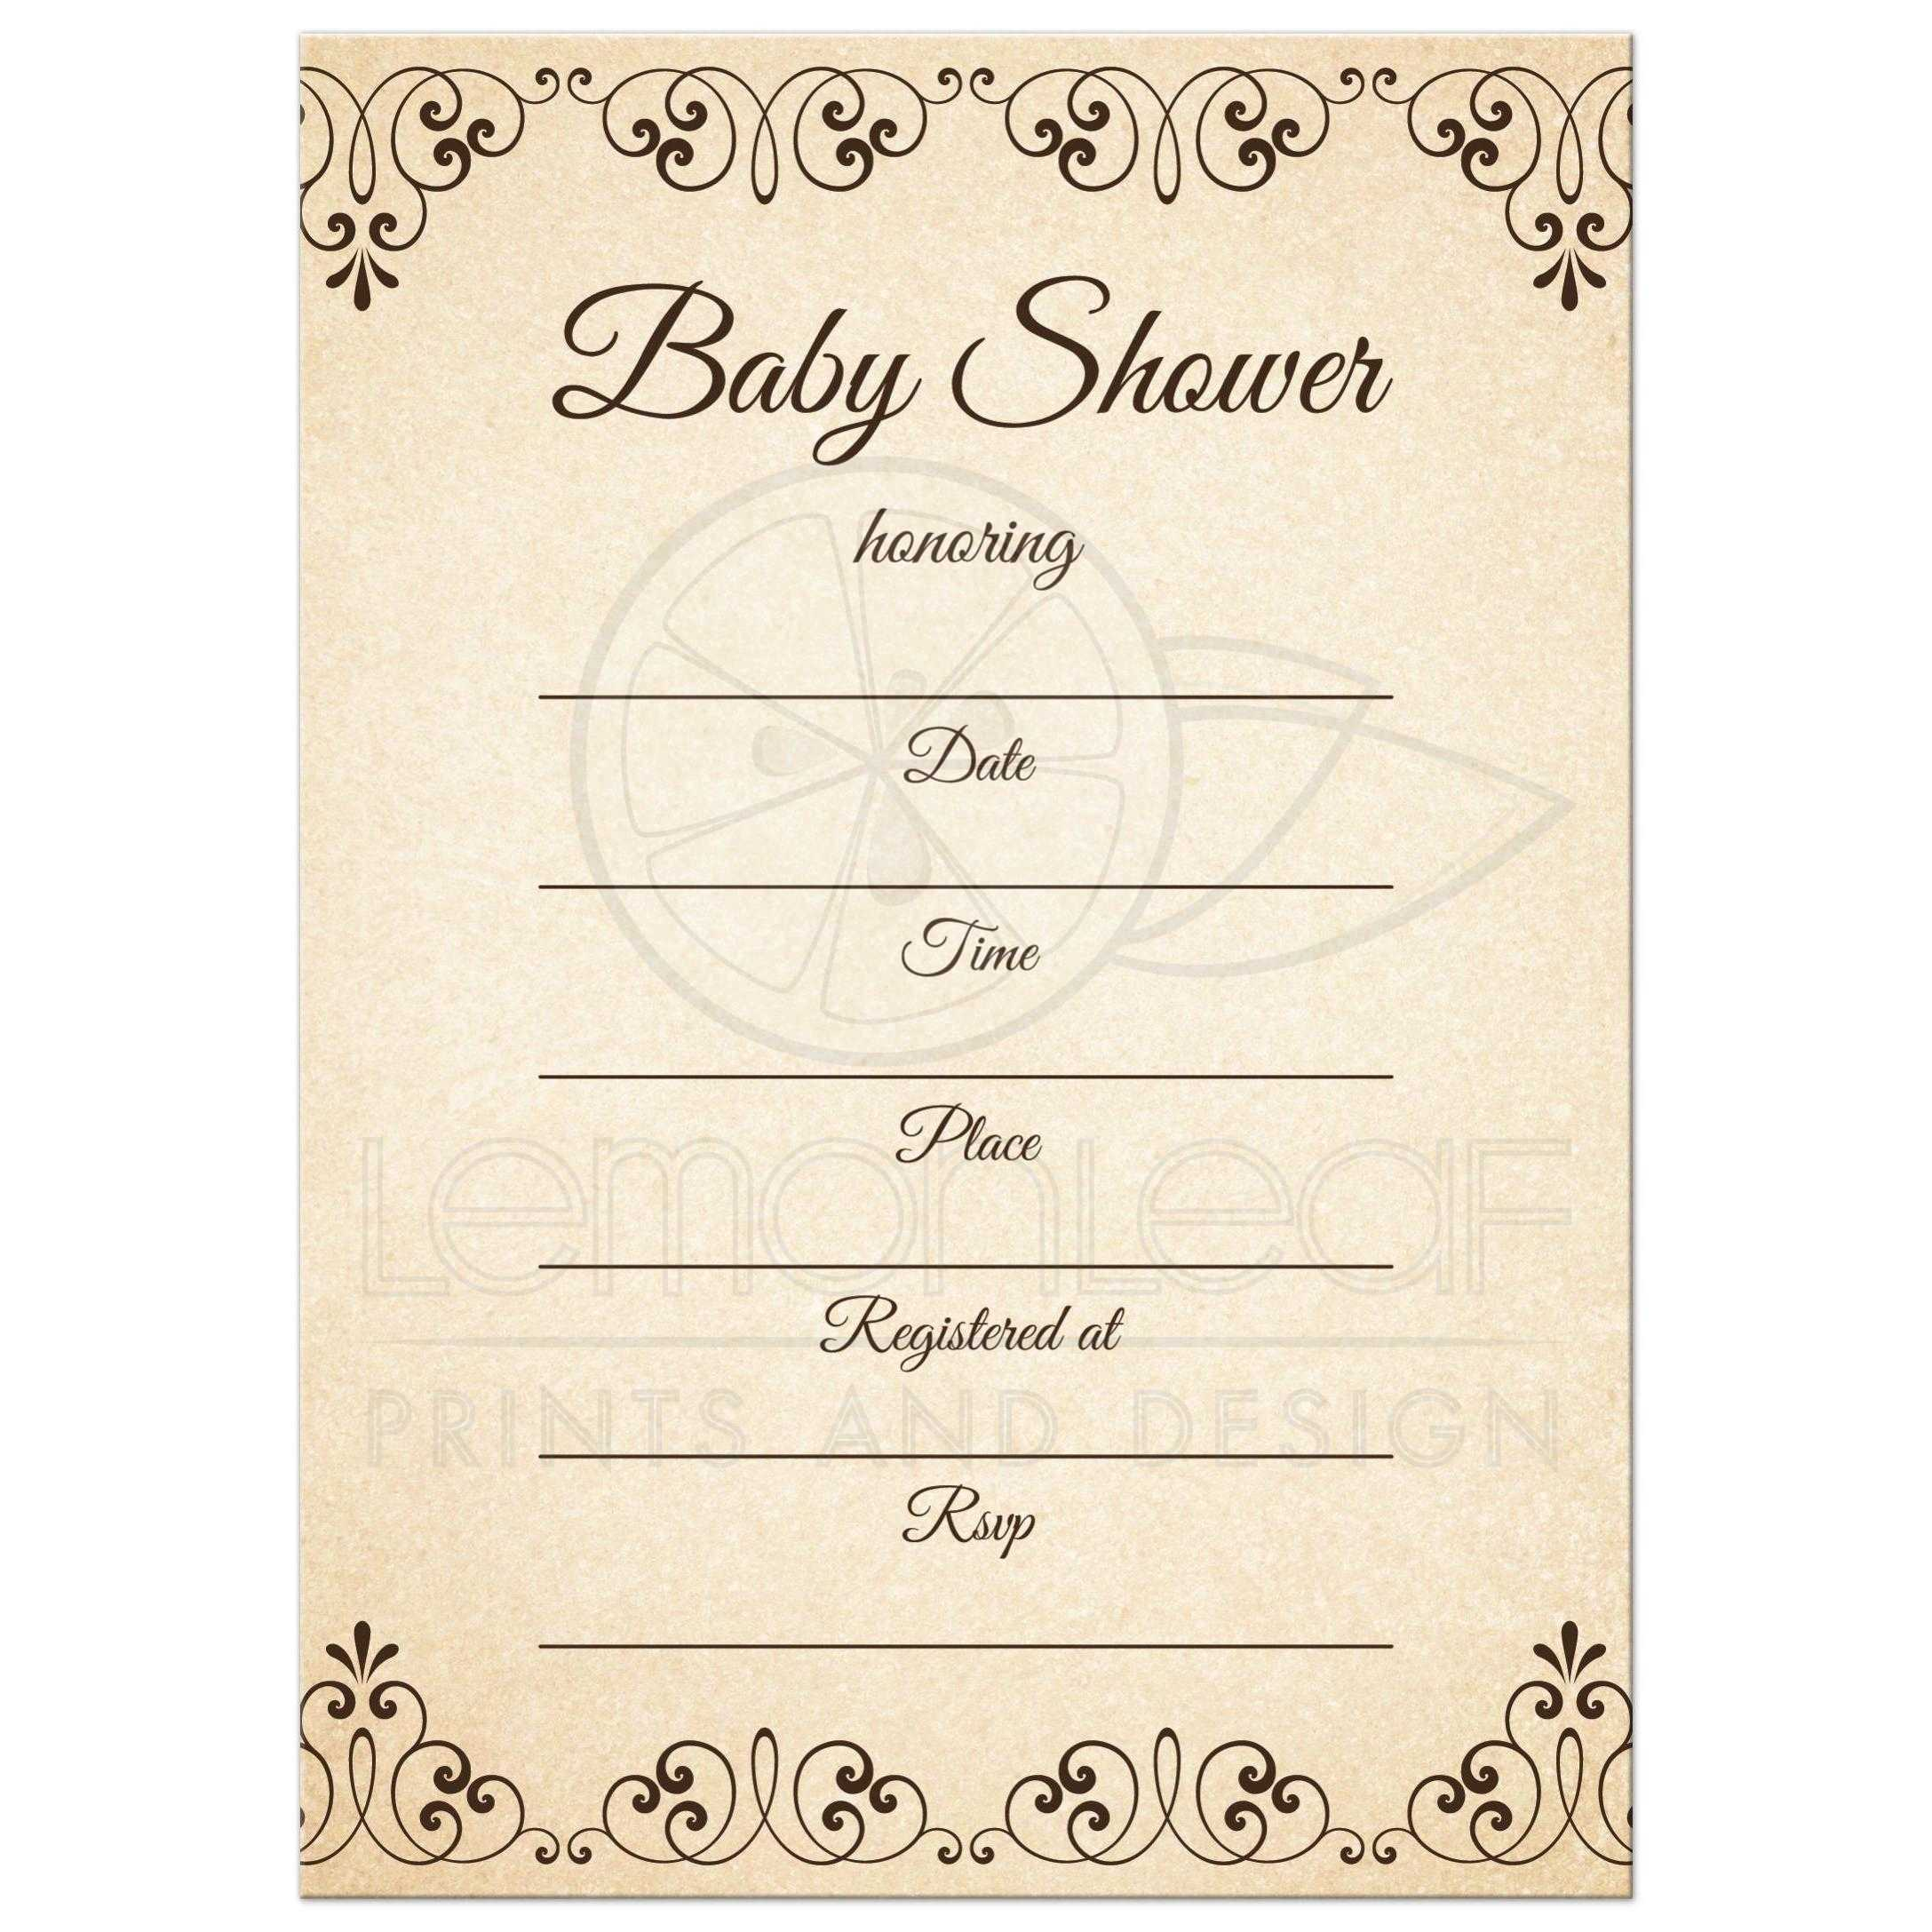 Adoption baby shower invitations with tree and heart - fill in the ...